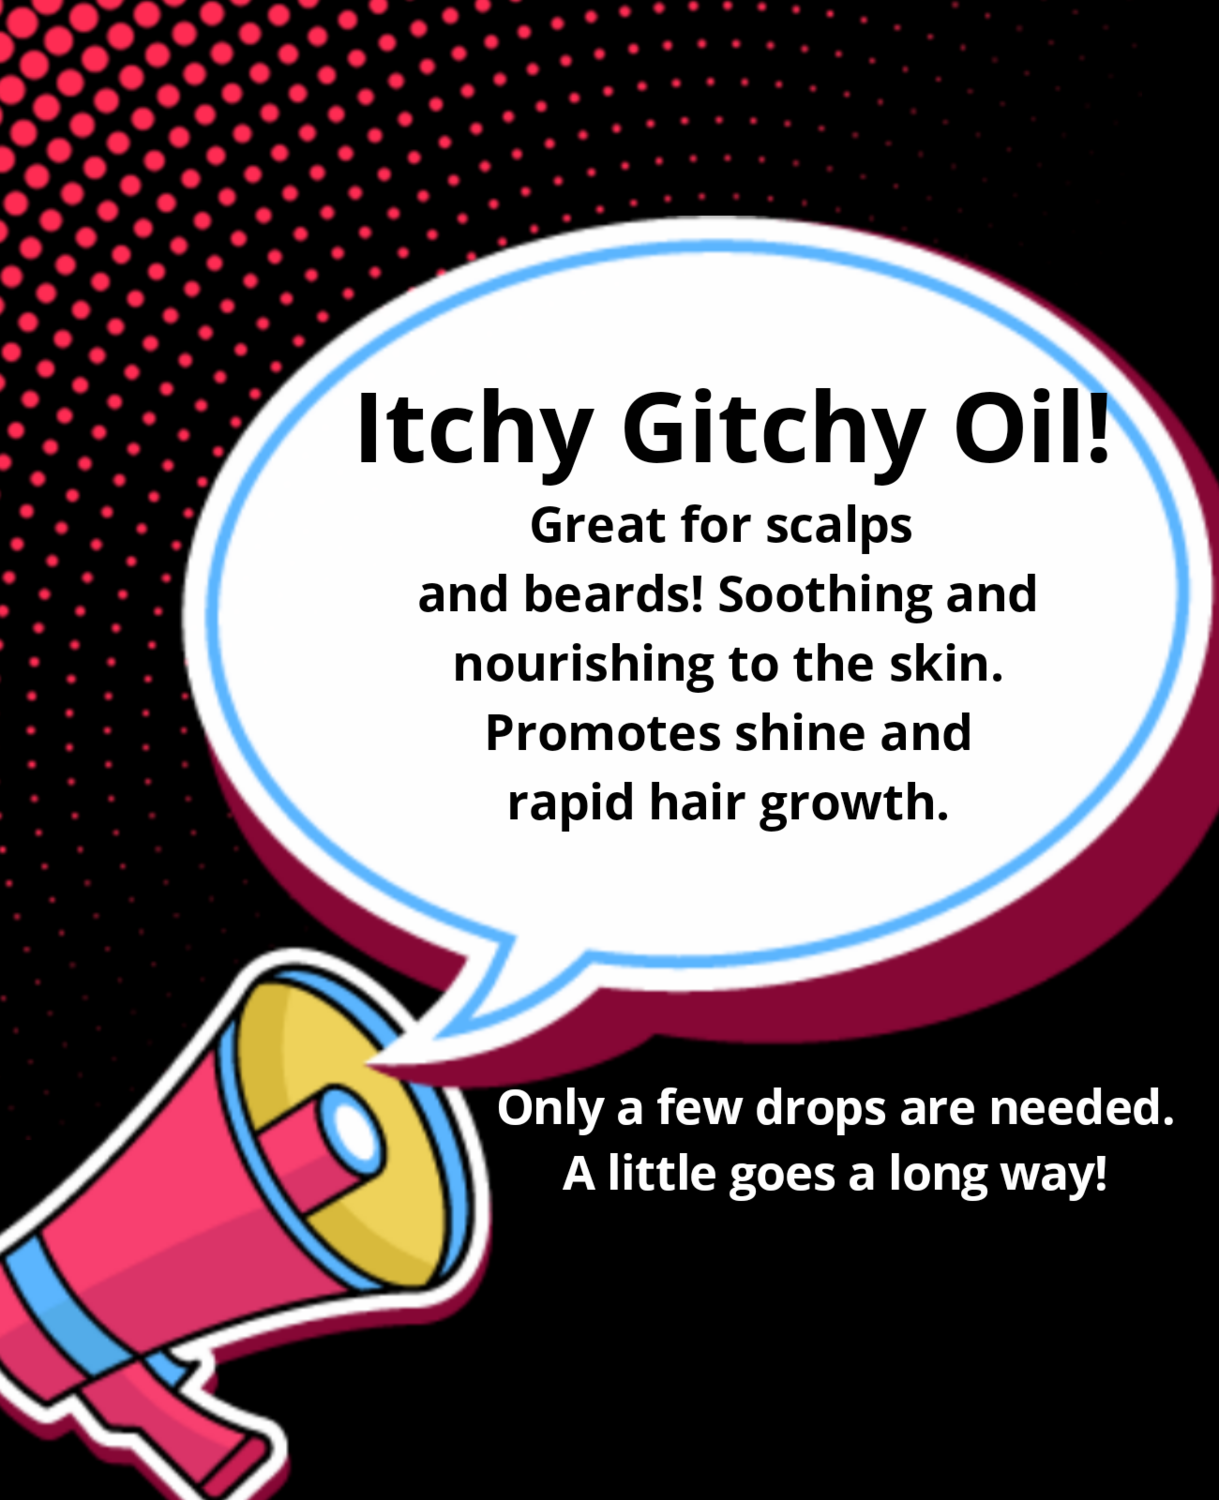 Itchy Gitchy Cooling scalp drops